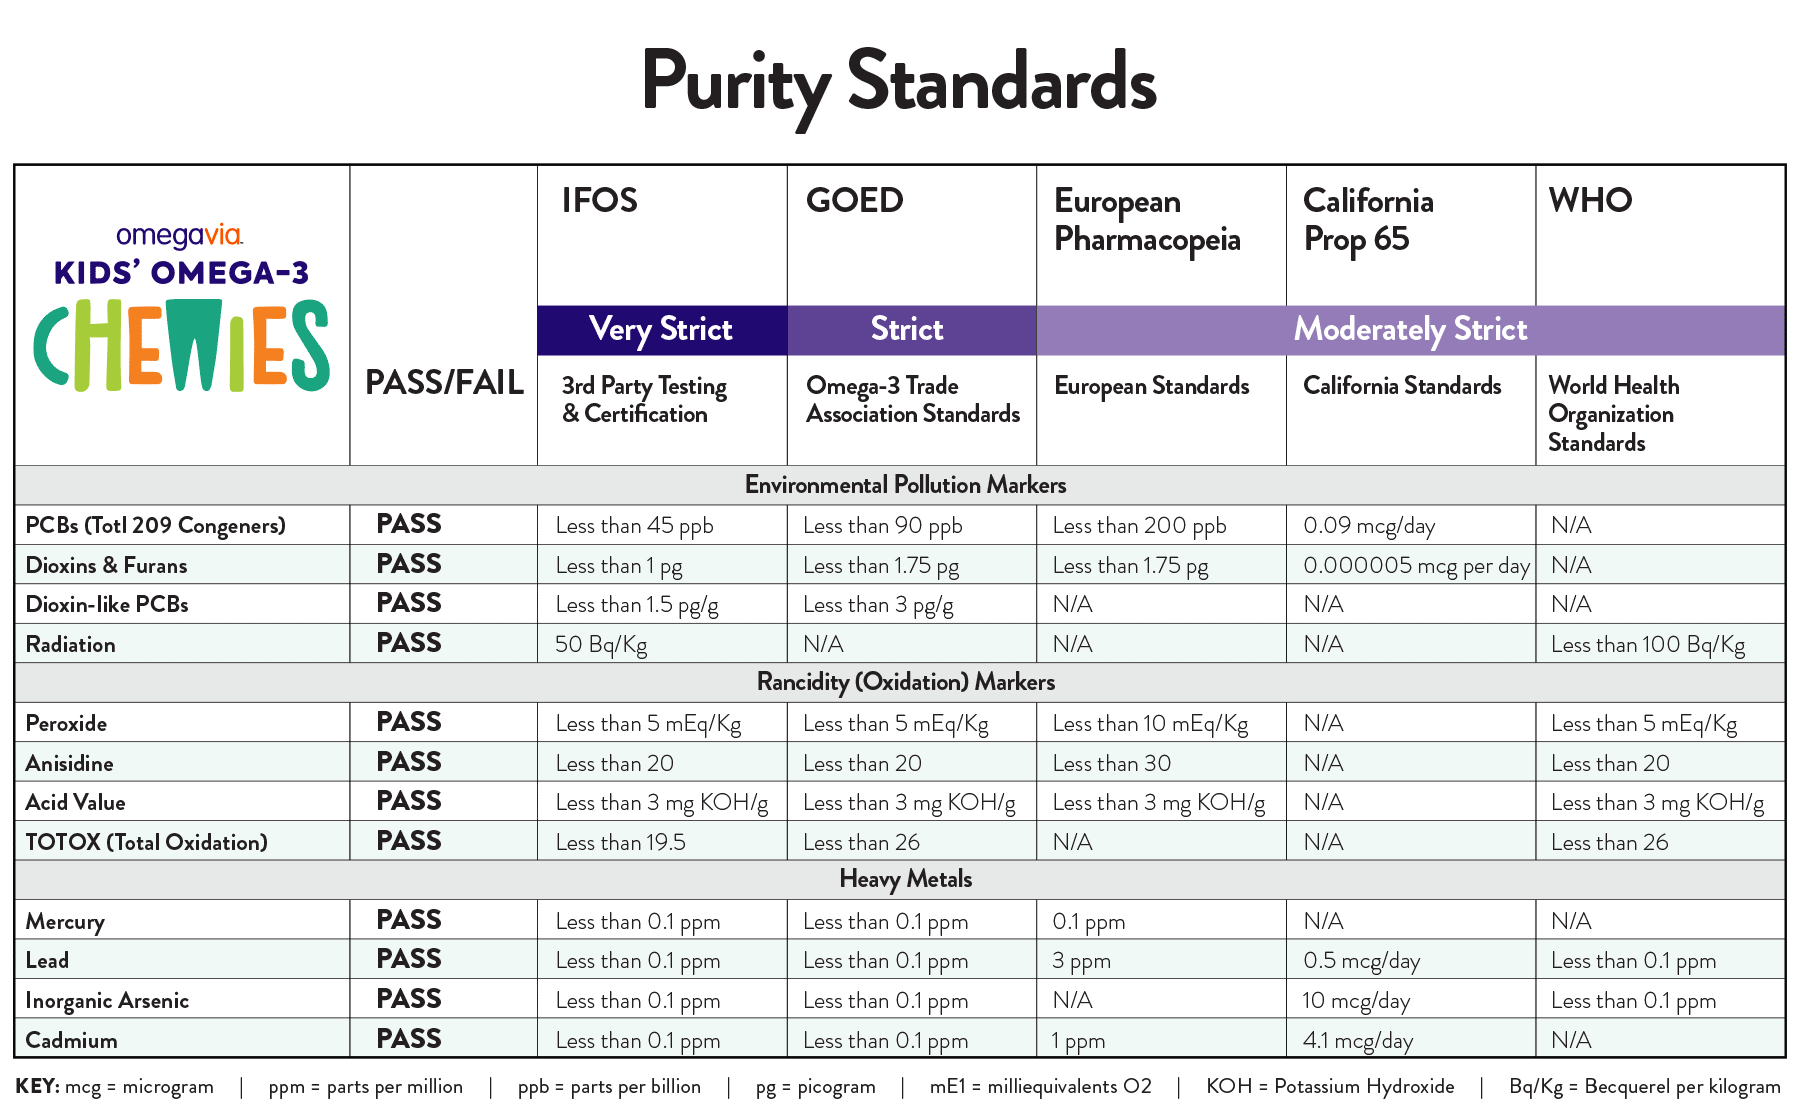 OmegaVia Kids' Omega-3 Chewies Purity Standards chart